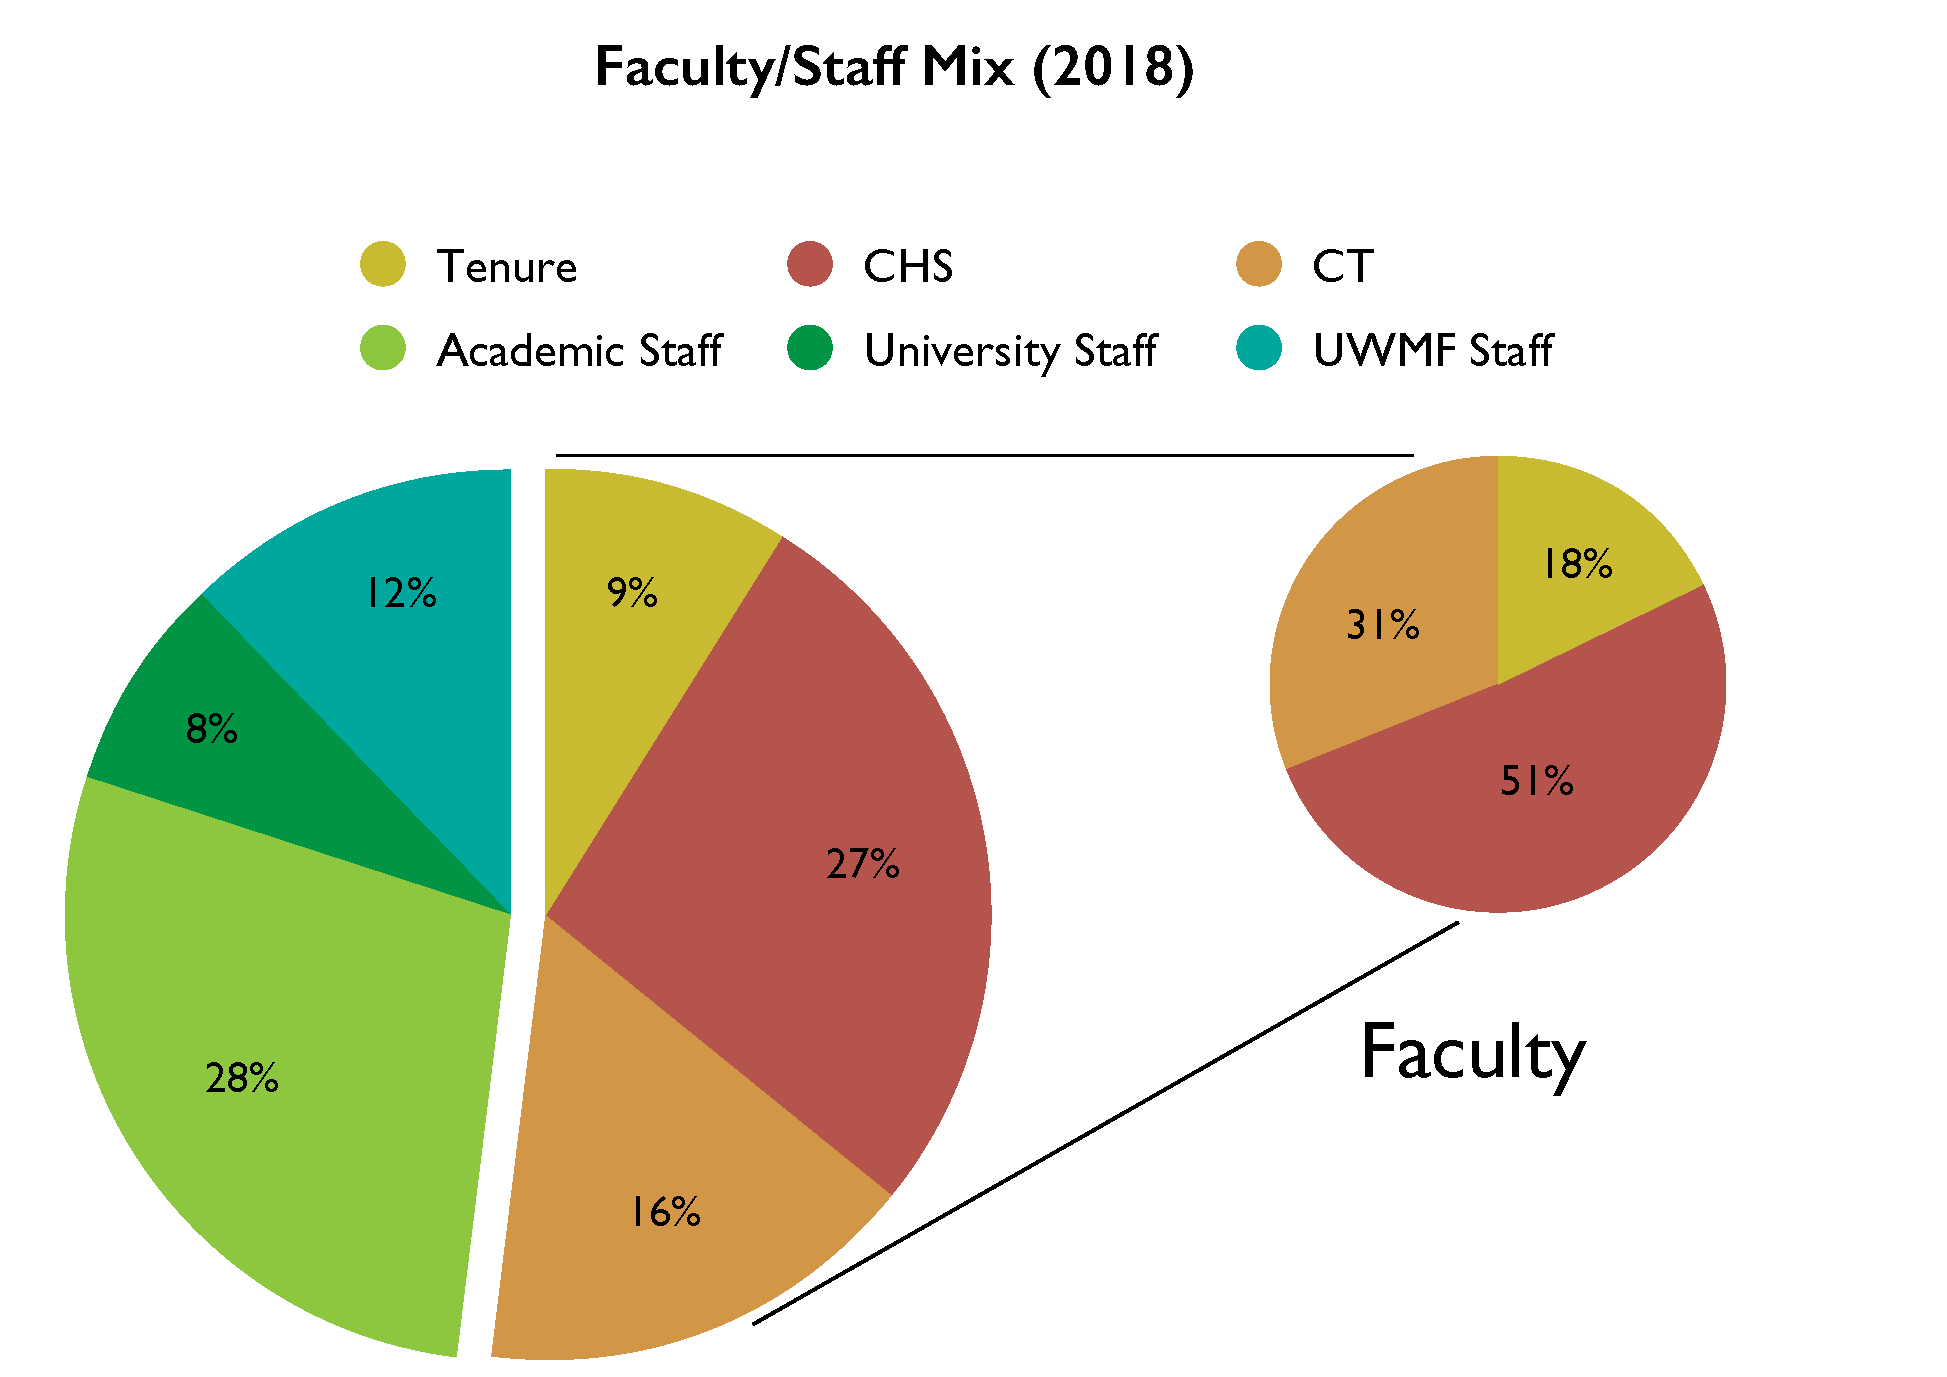 Staff Mix AR 2019 pie chart